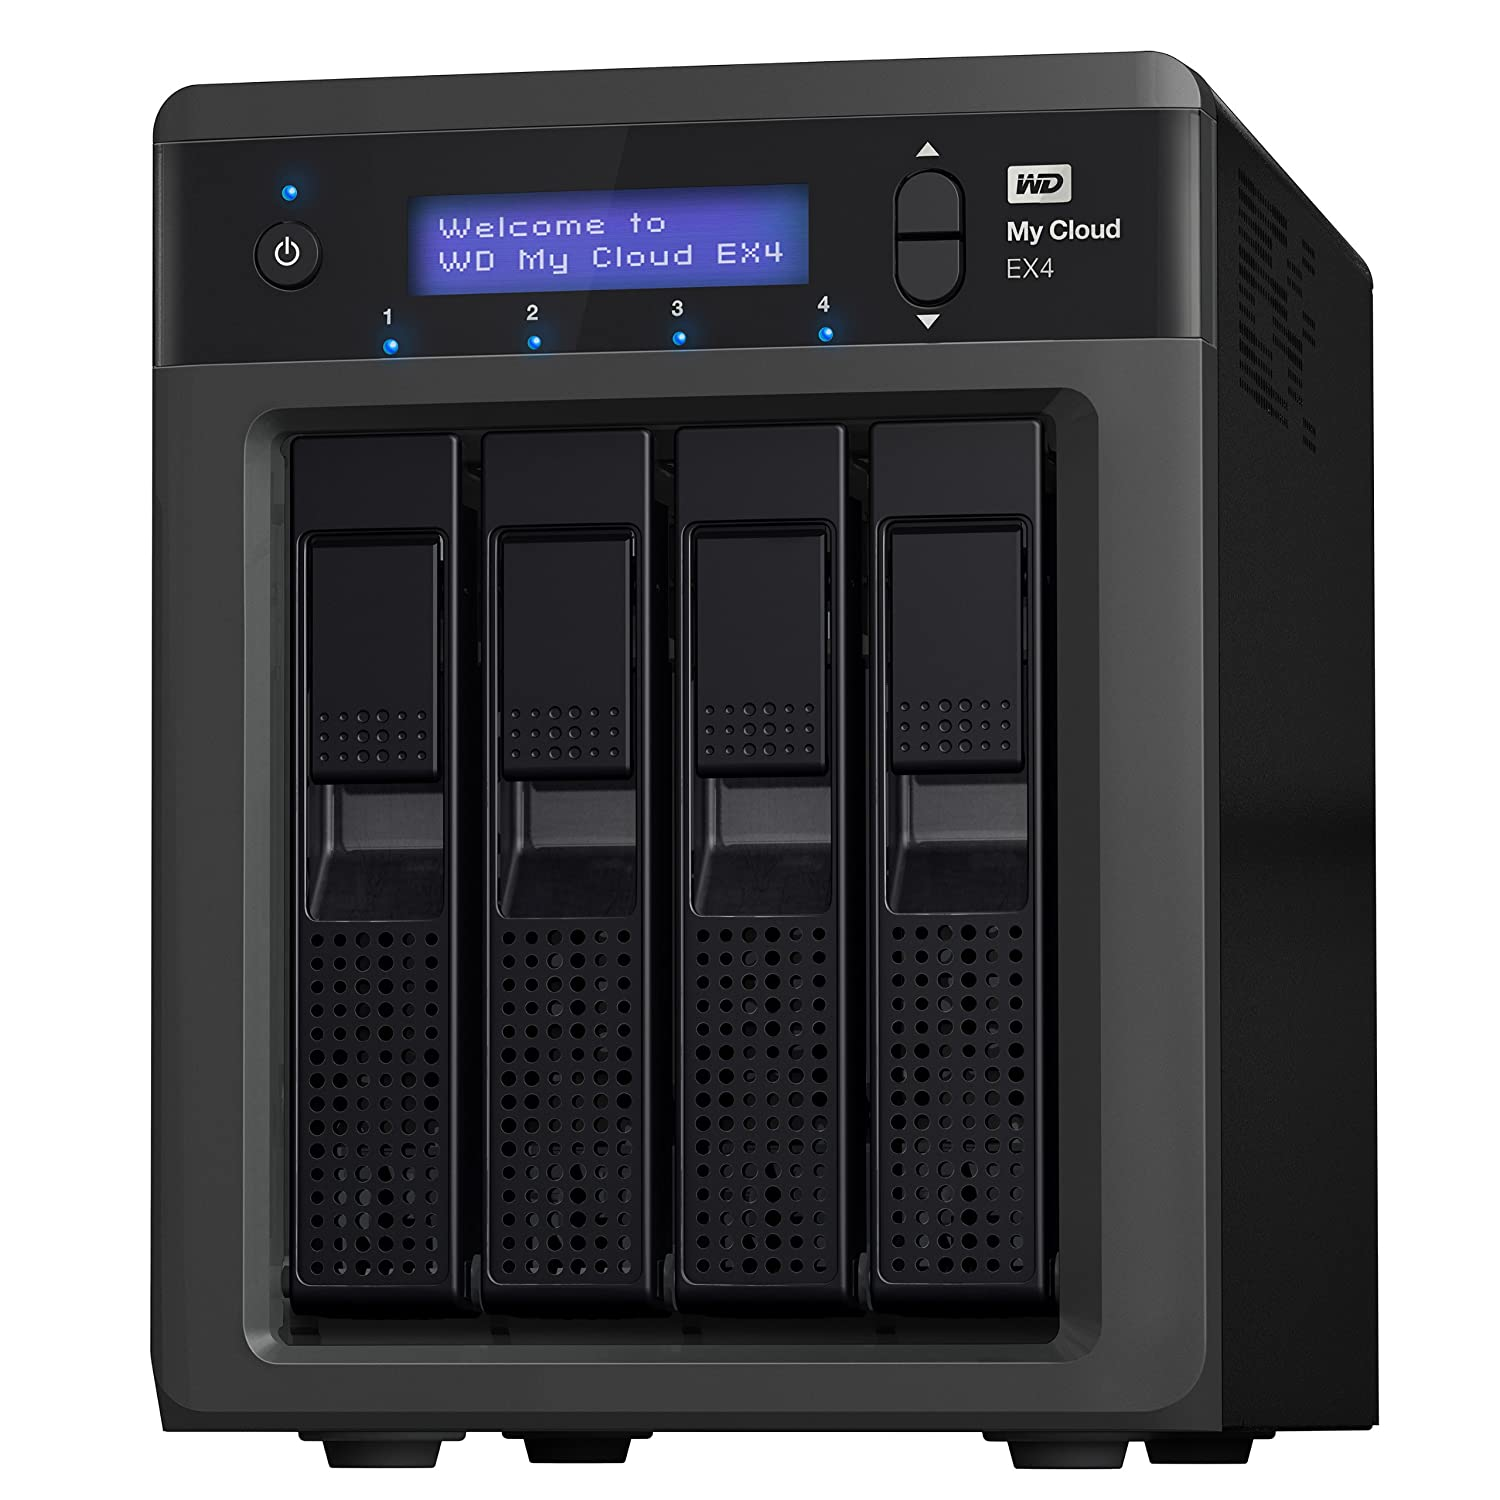 WD My Cloud EX4 Diskless: High-performance NAS, Ultimate reliability